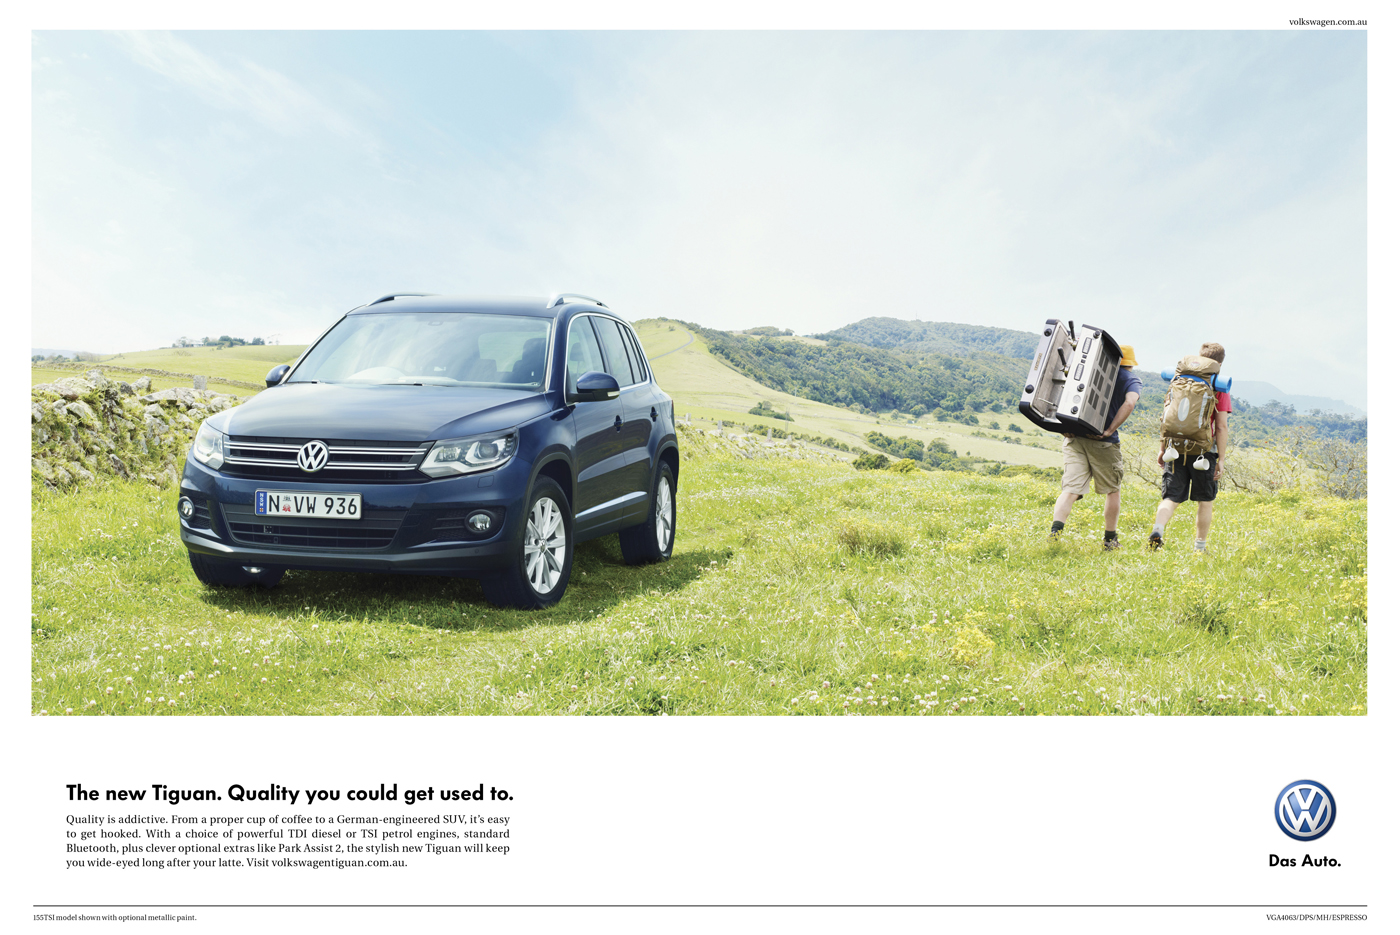 Volkswagen Tiguan Taste For Quality - The Inspiration Room